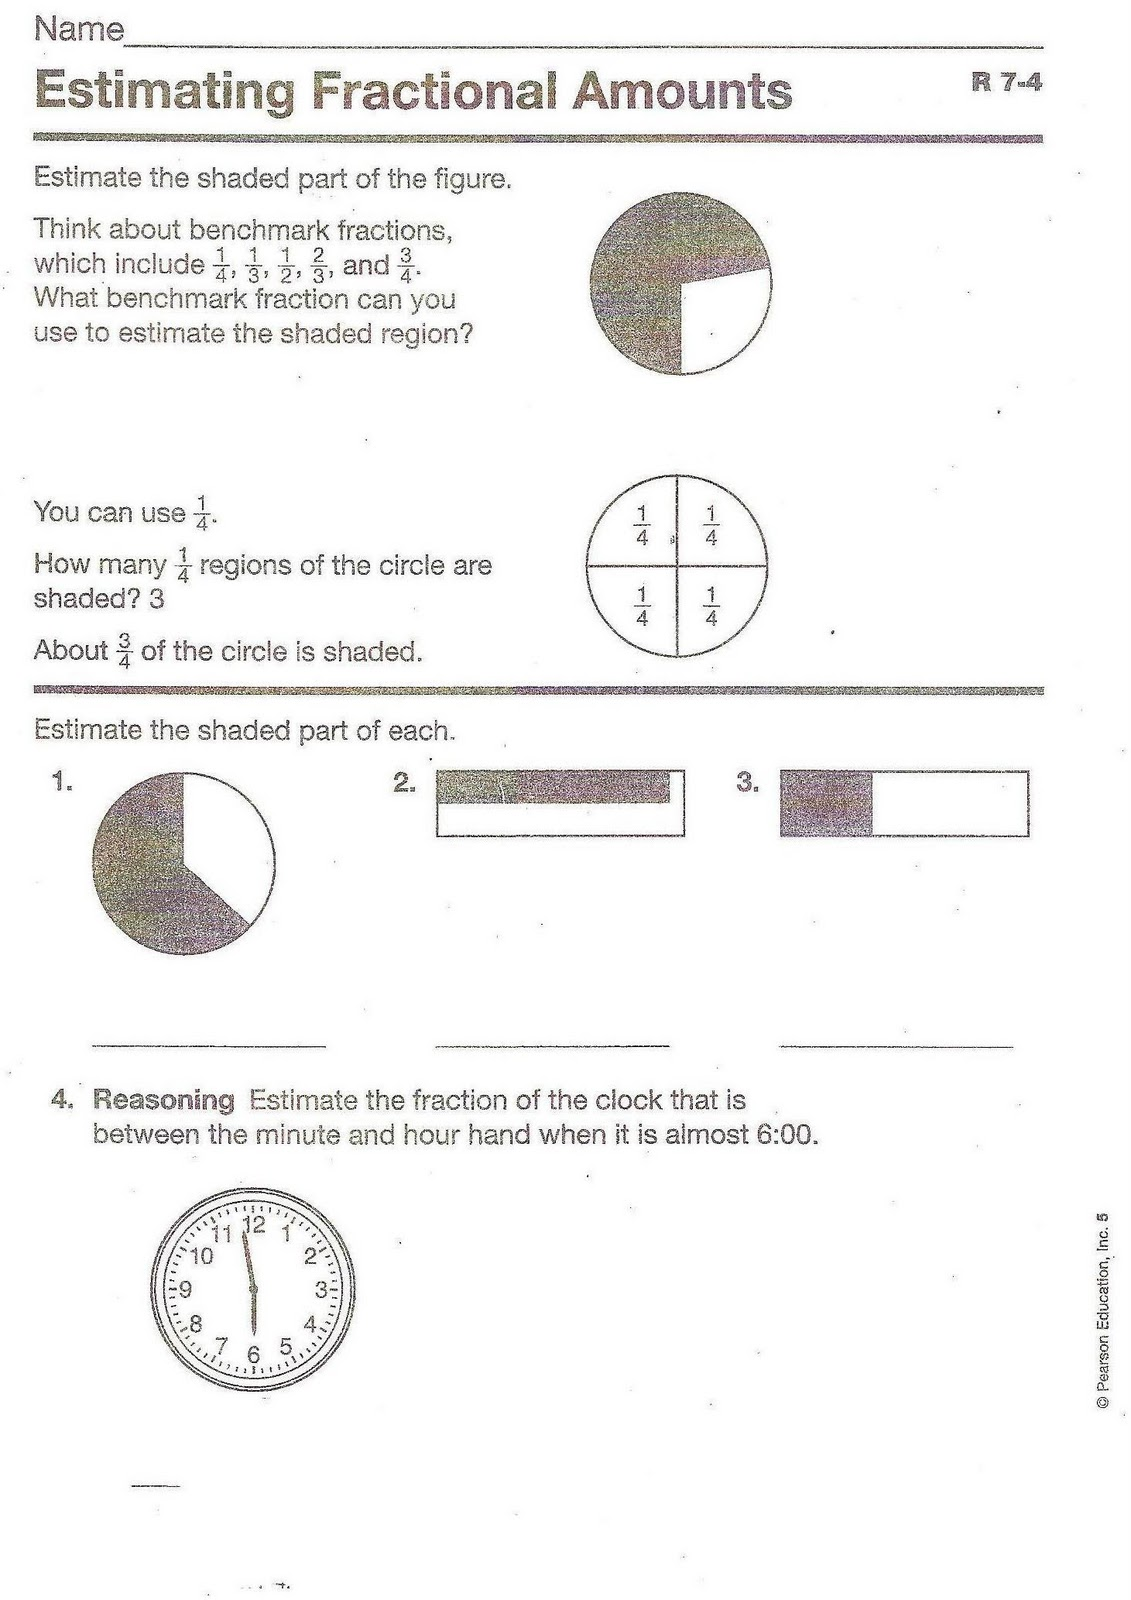 5Th Grade Fractions Worksheets – Estimating Fractions Worksheets